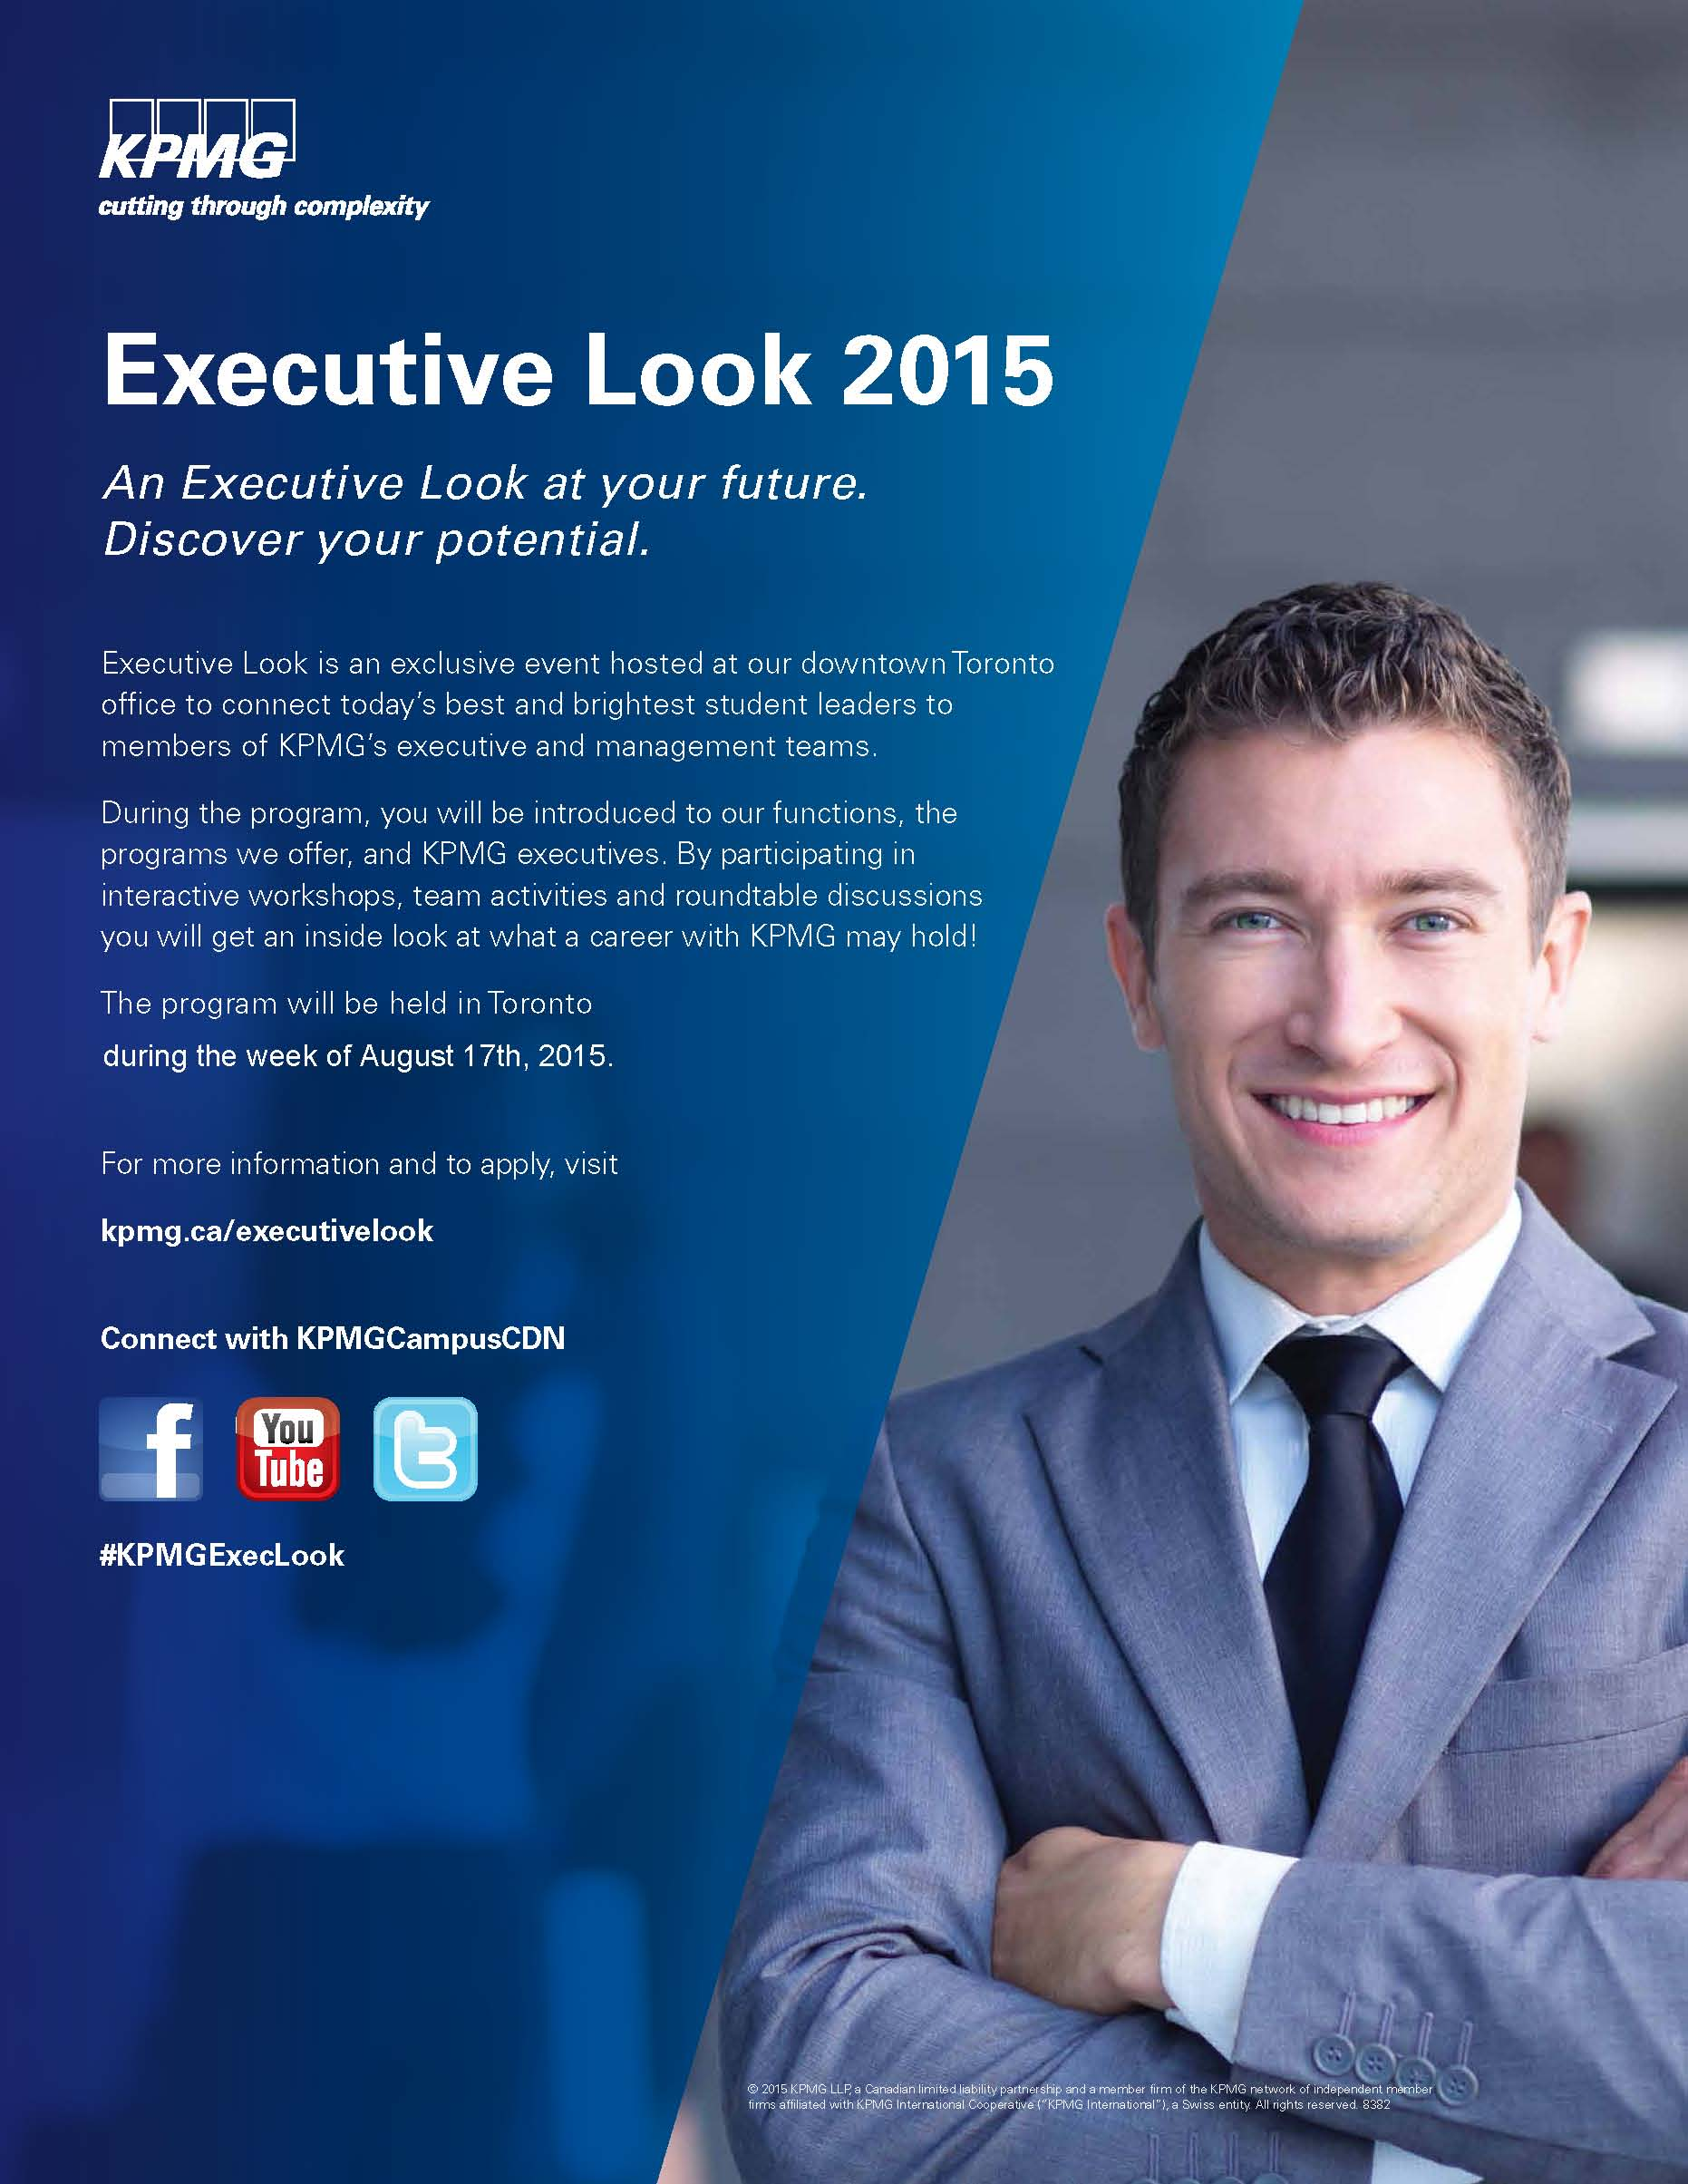 KPMG's Executive Look Summer Conference: Apply to Participate!